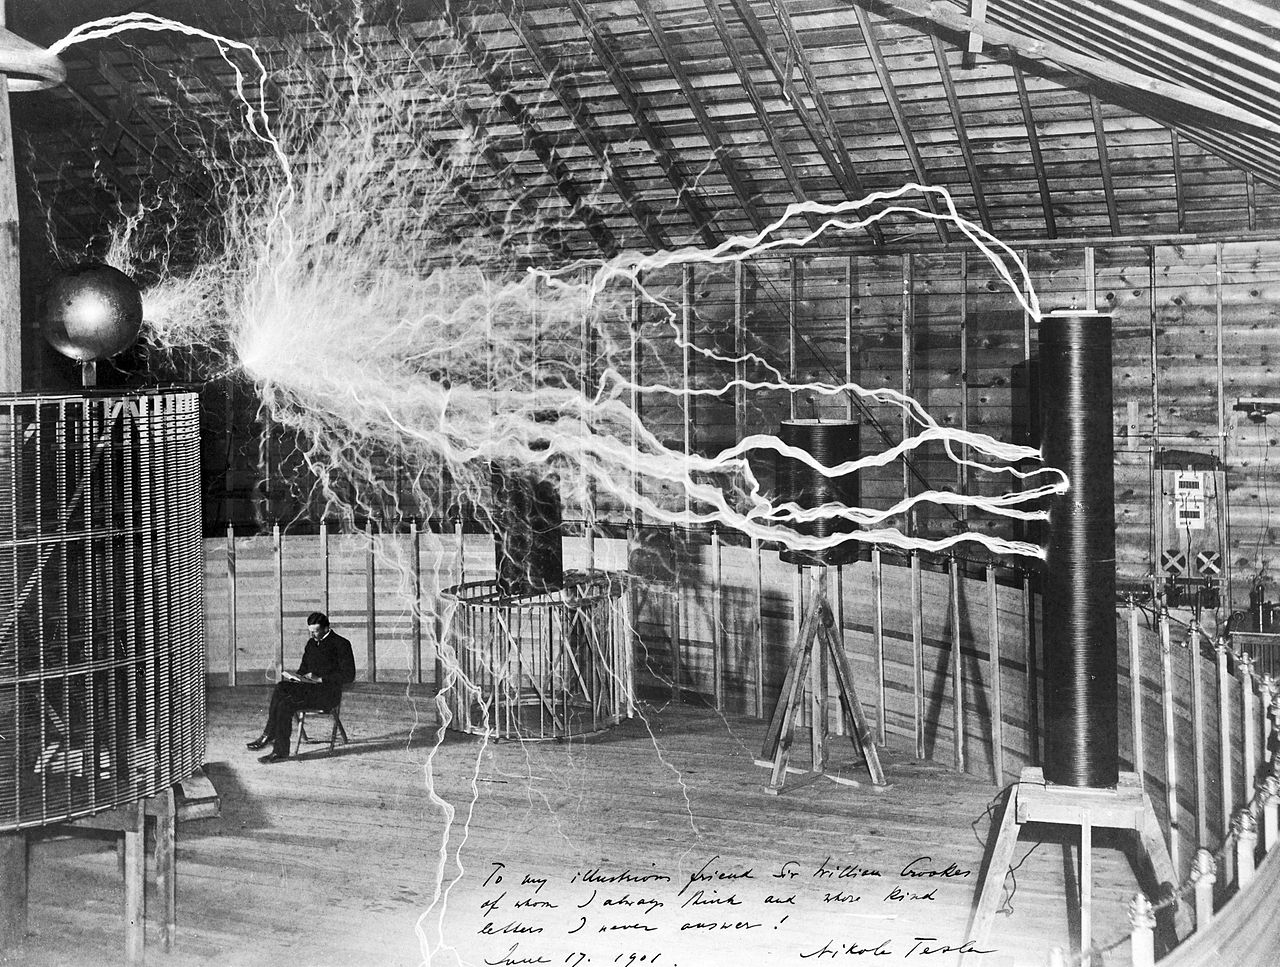 Il laboratorio di Tesla a Colorado Springs, 1900